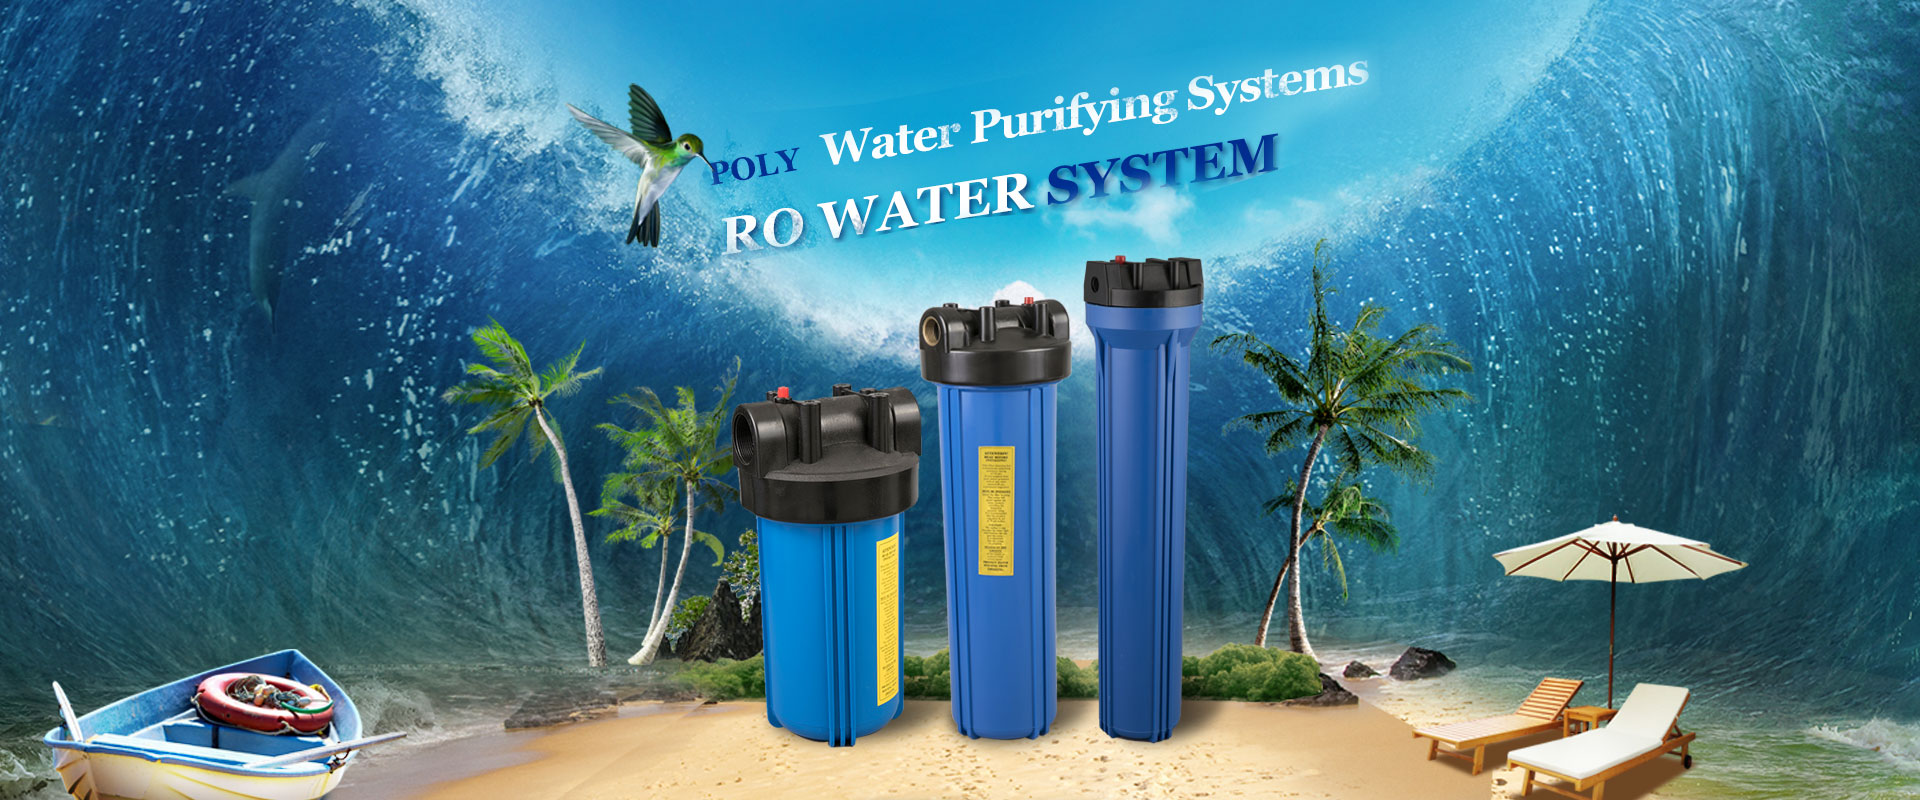 Introduction of the function of the water purifier